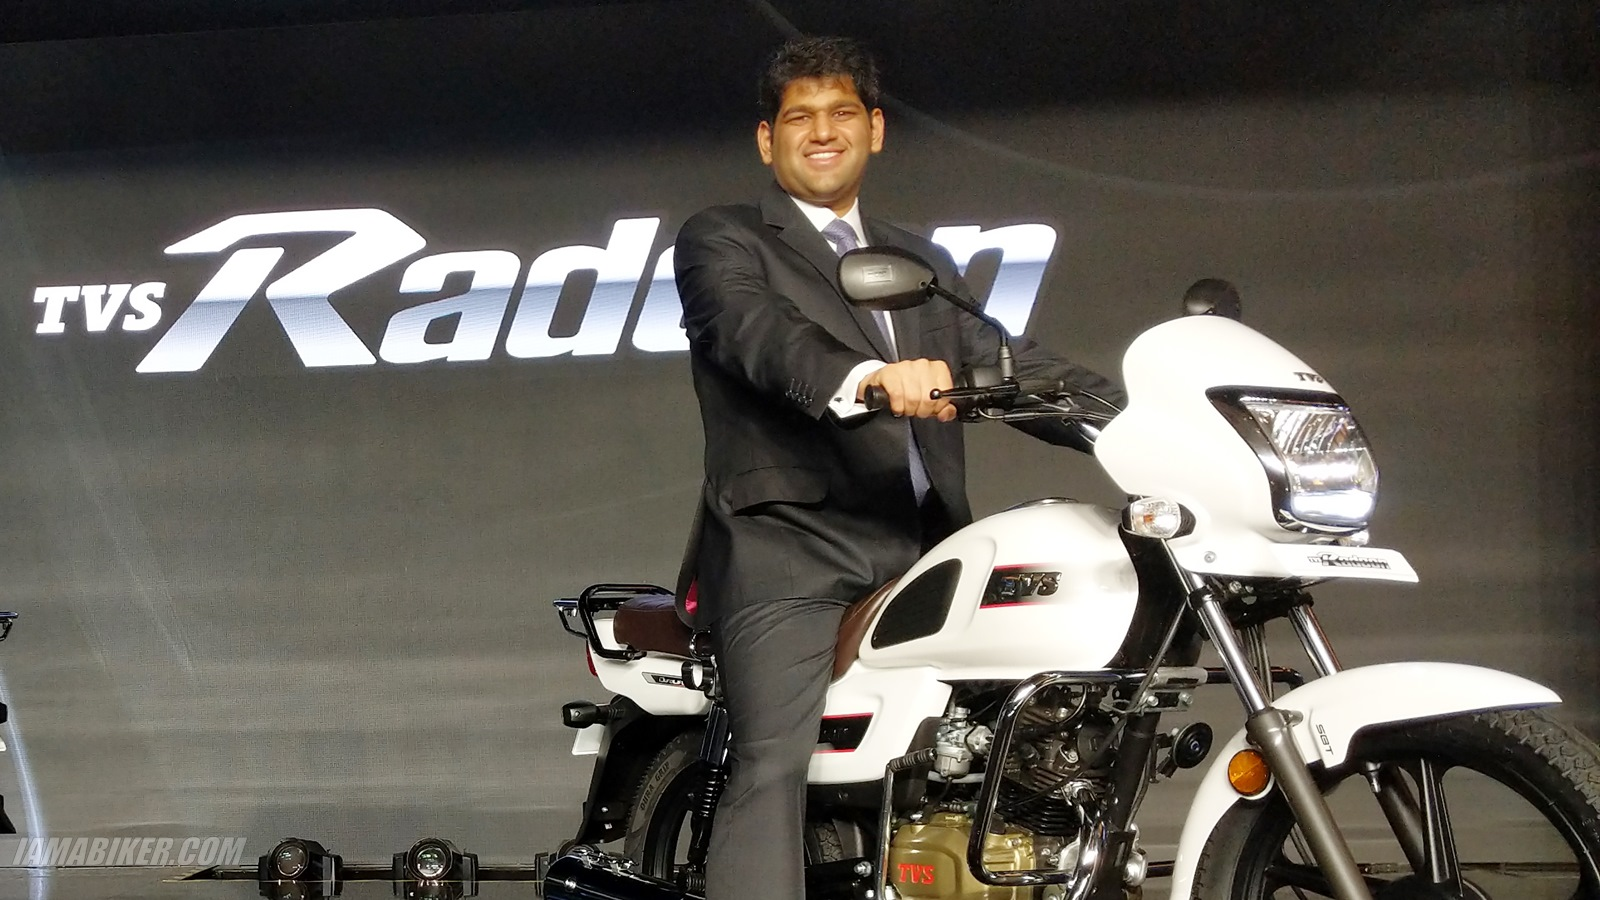 TVS Radeon launched at Rs 48,400